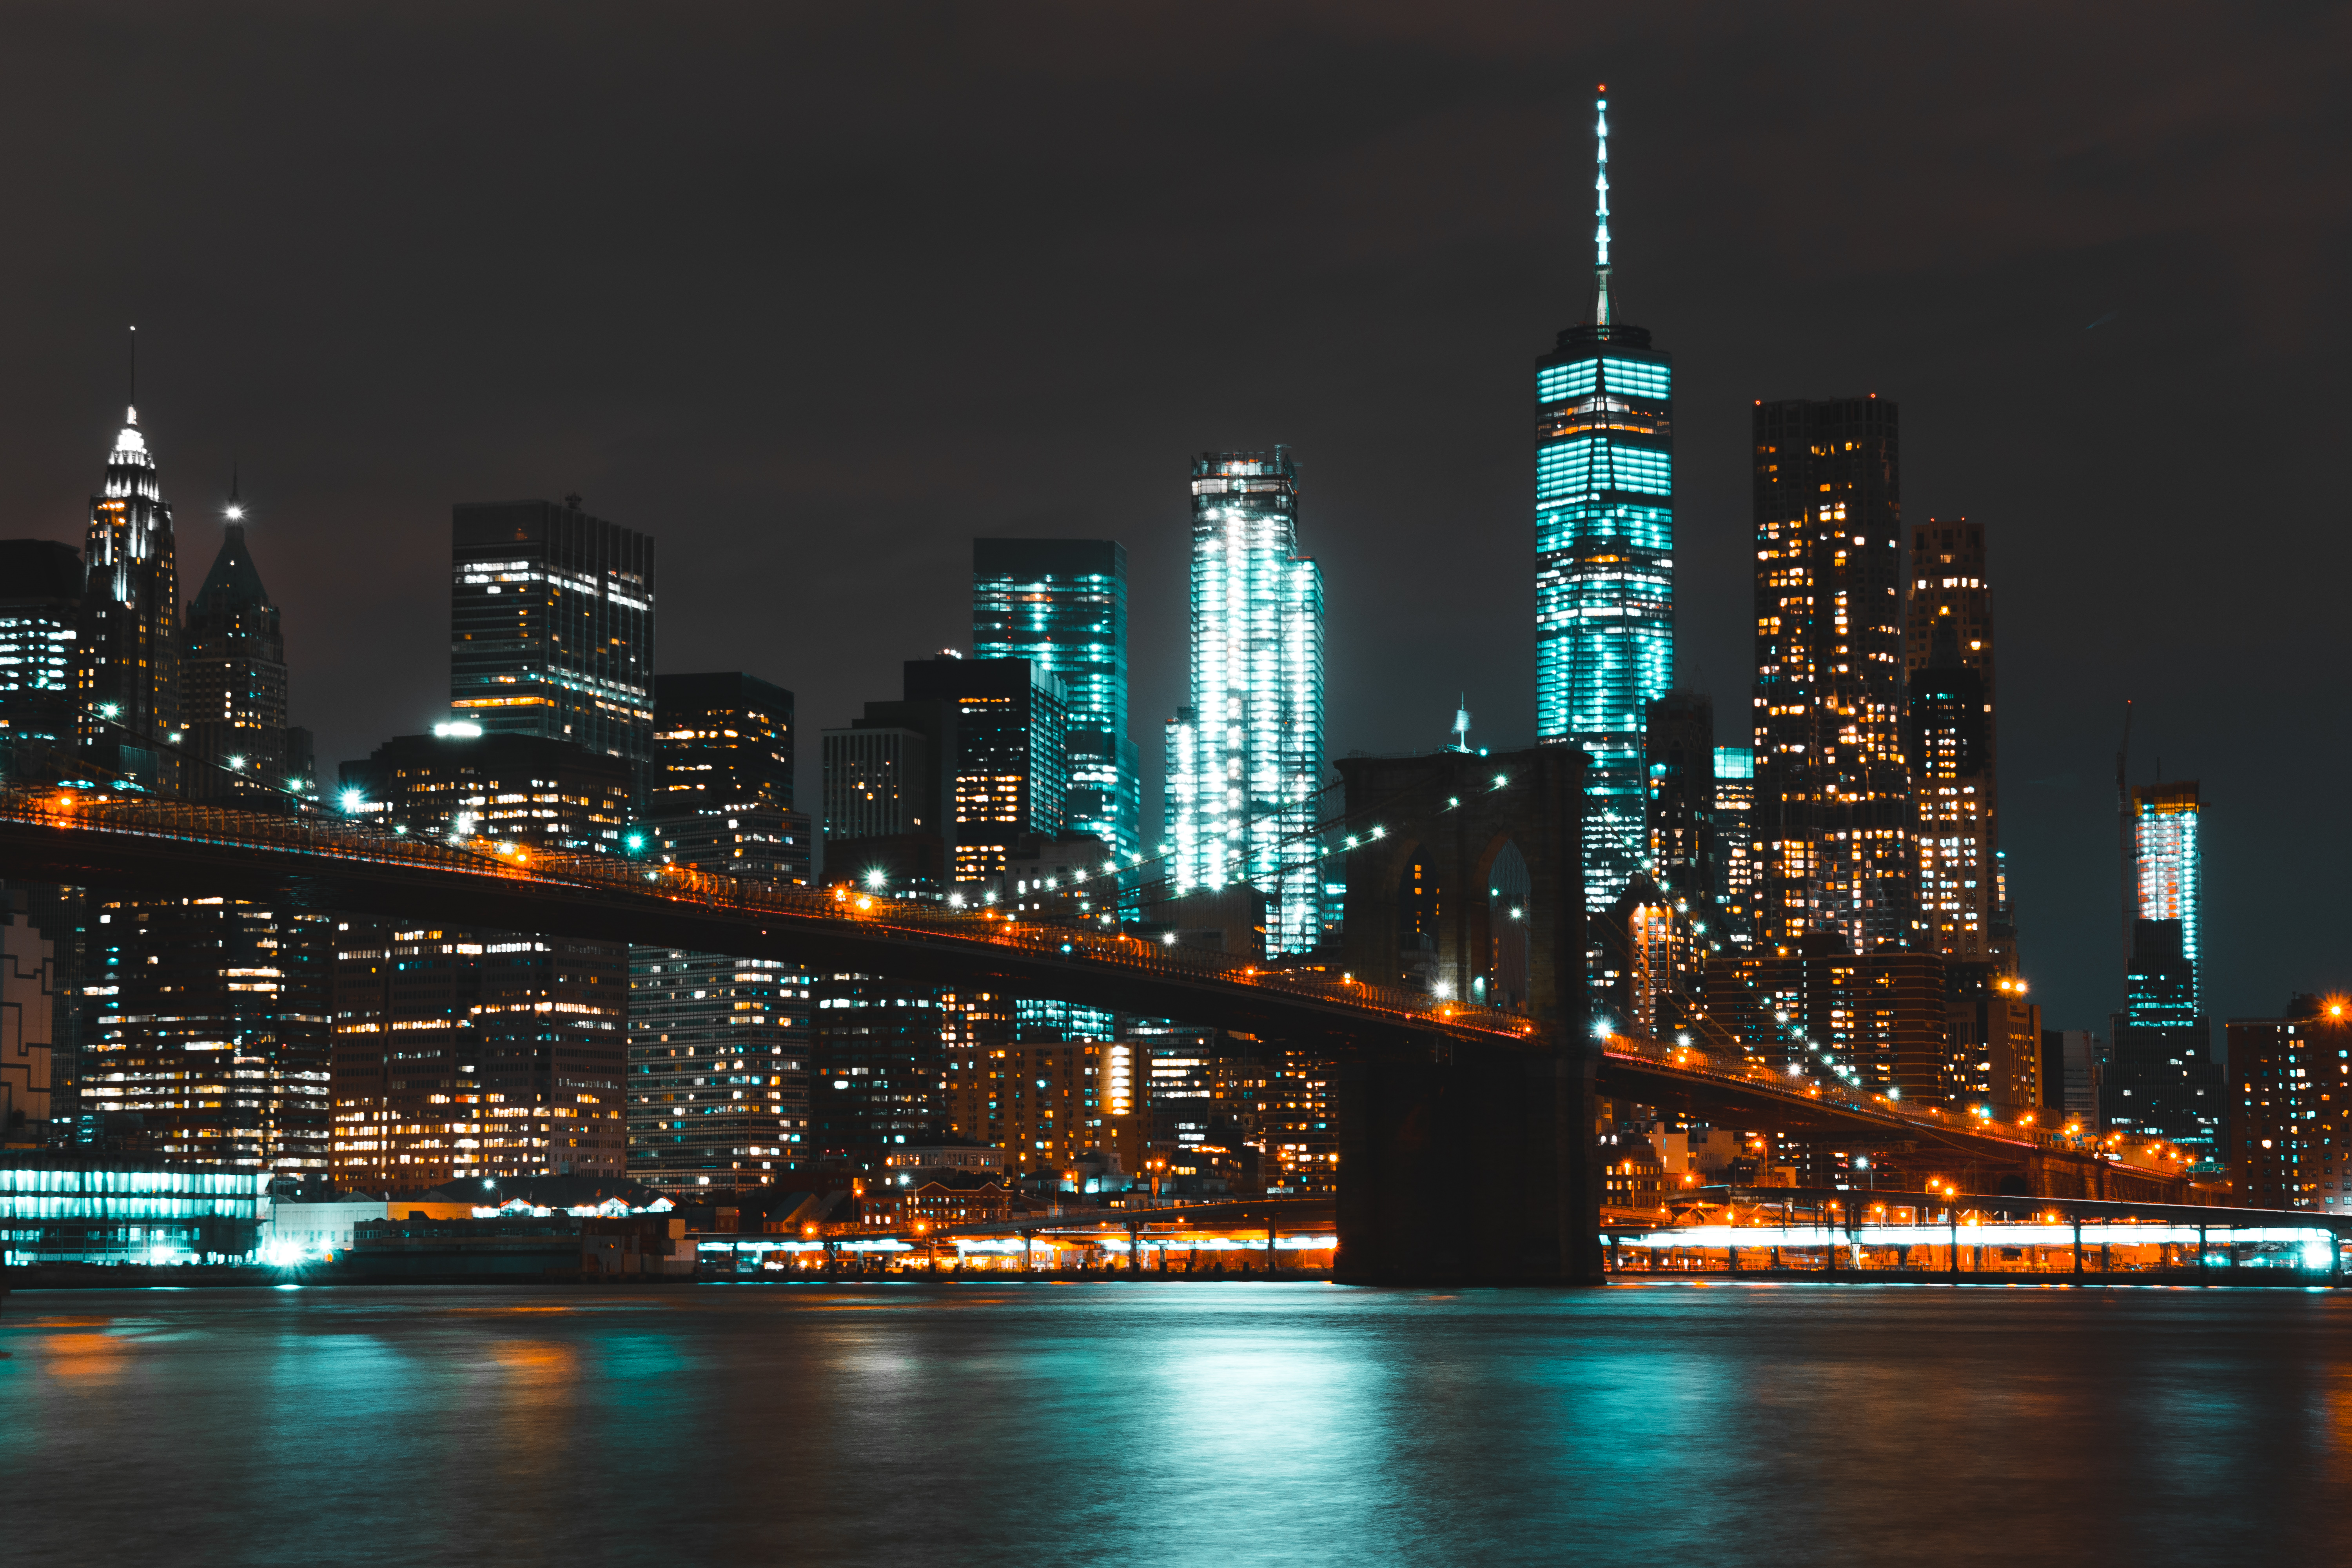 New york city wallpaper pexels free stock photos free stock photo of sea city sky lights voltagebd Image collections